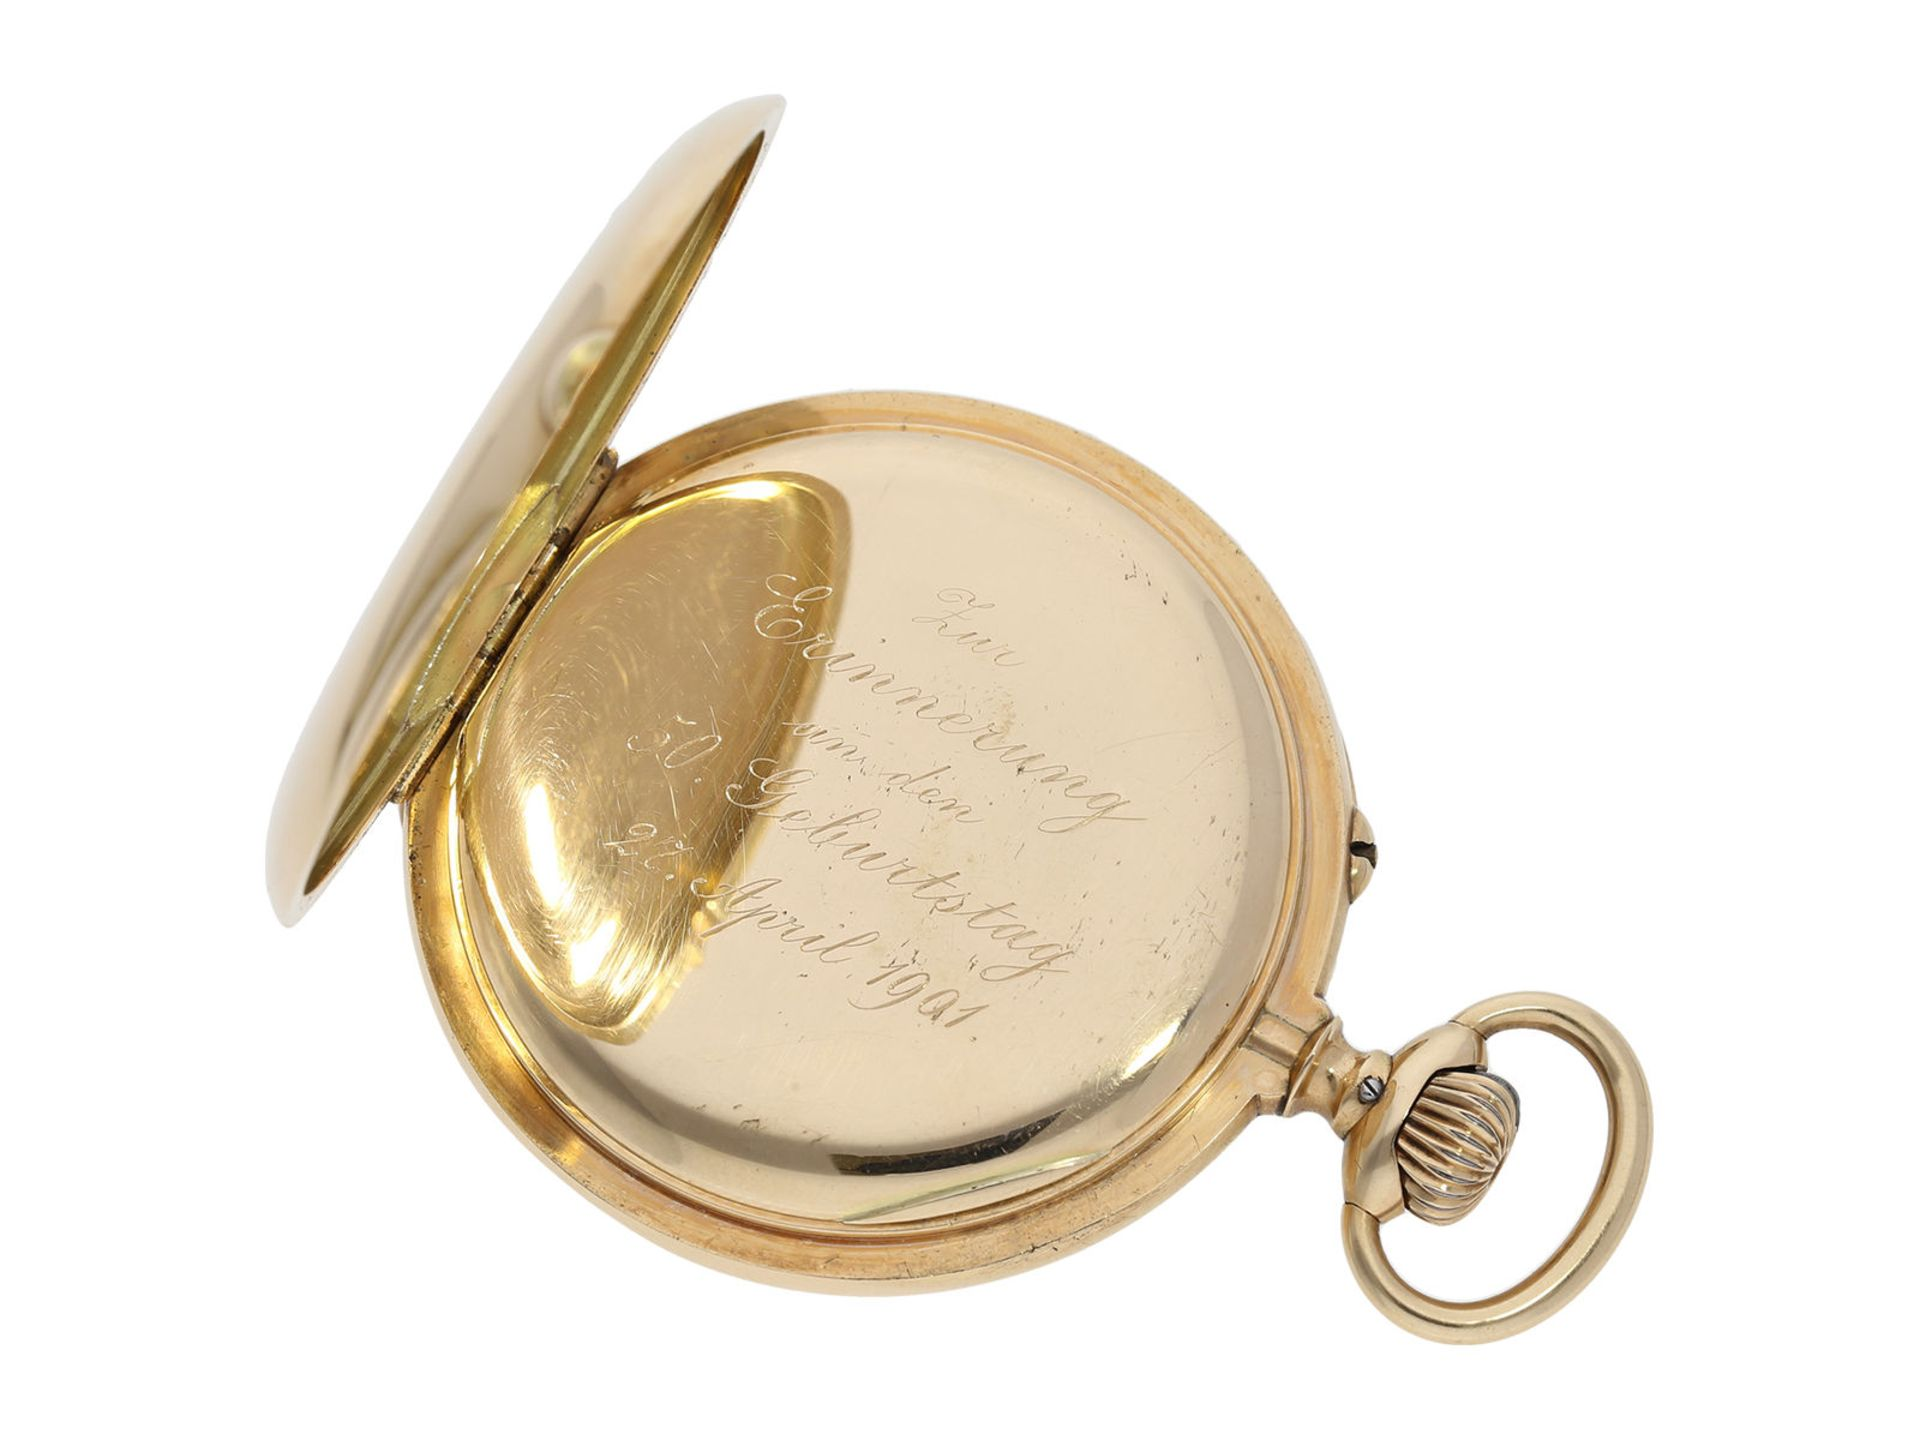 "Pocket watch: very rare IWC precision pocket watch quality ""EXTRA"", No. 181428, Schaffhausen ca. - Bild 4 aus 6"